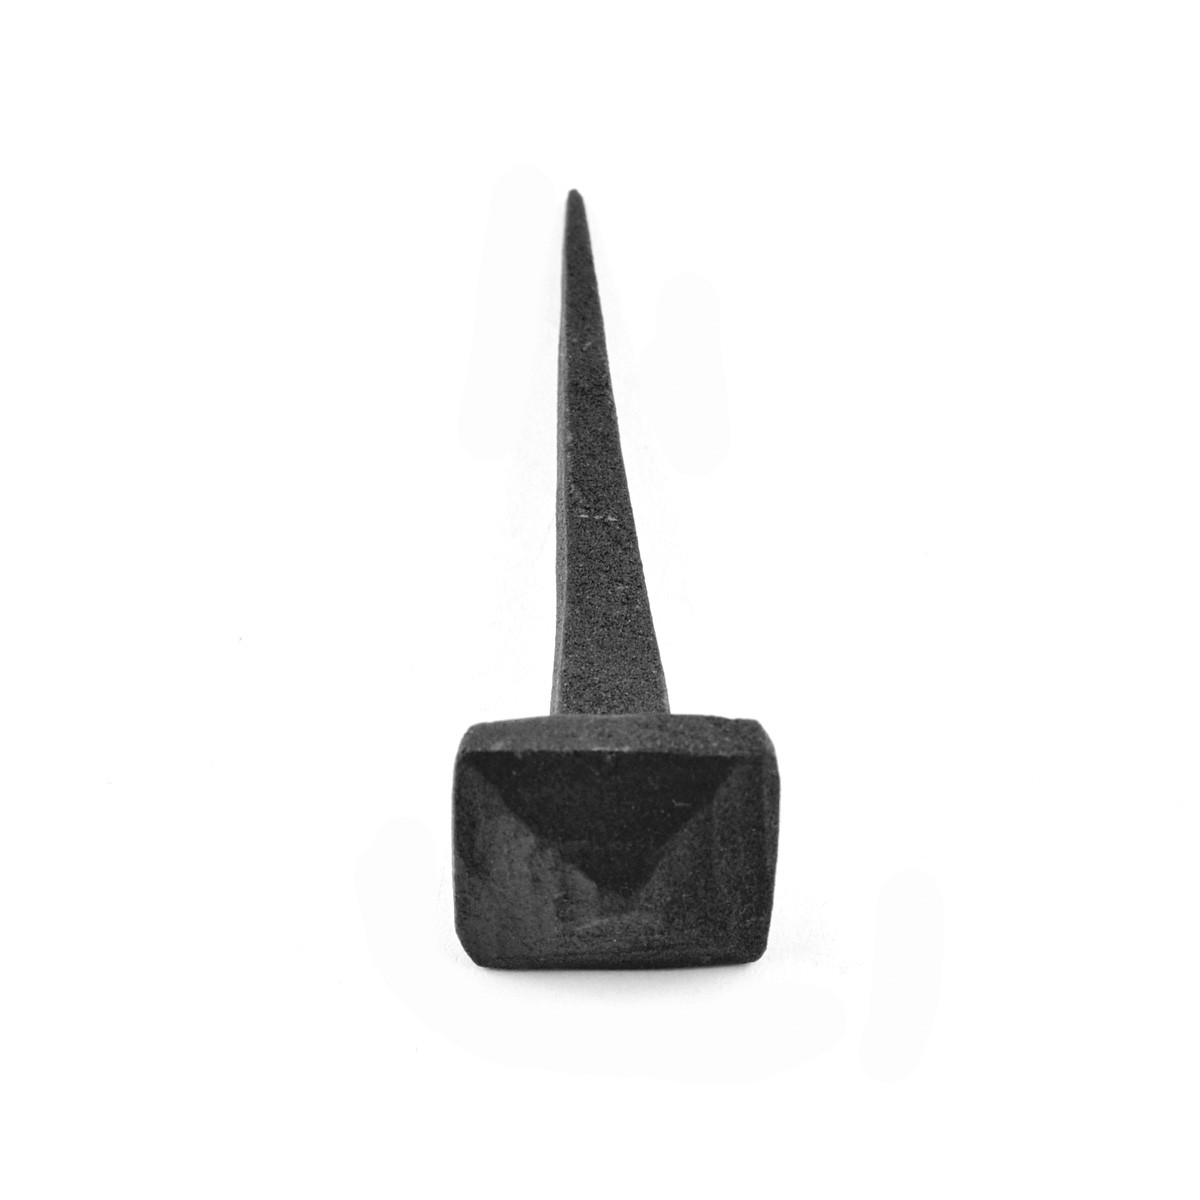 Decorative Wrought Iron Nails Clavos Square Pyramid Head Iron Nails Wrought Iron Nails For Wood Black Iron Nails Clavos Decorative Nails